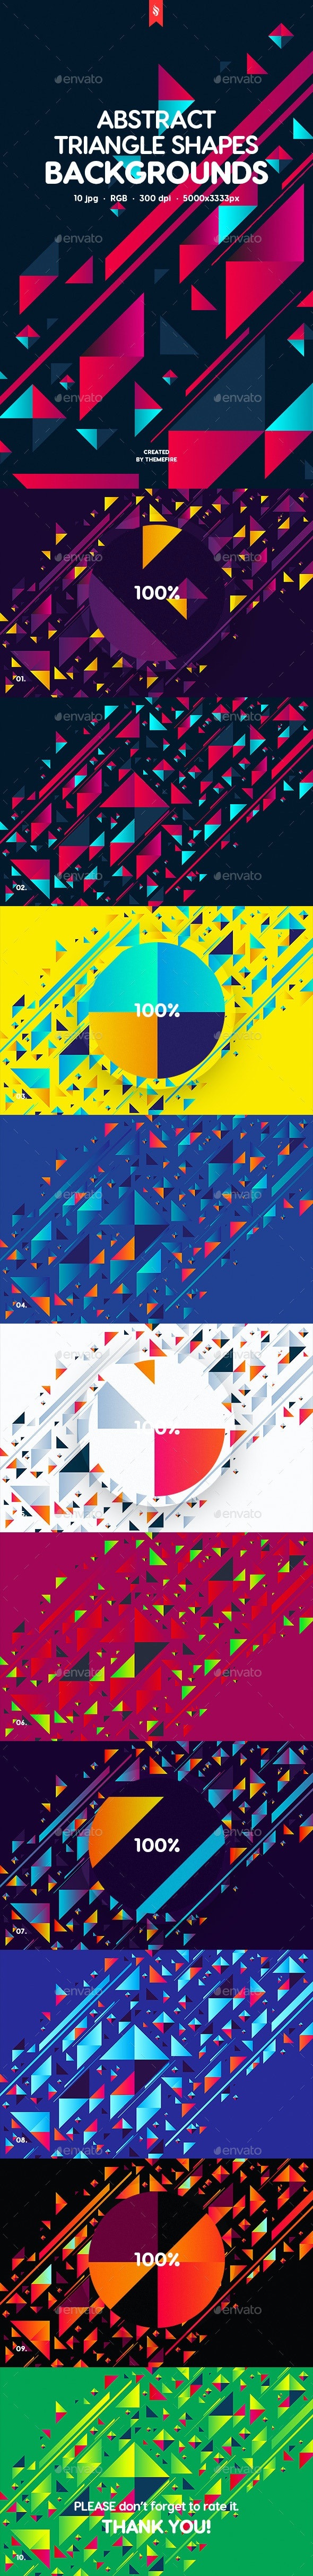 Abstract Triangle Shapes Backgrounds - Abstract Backgrounds